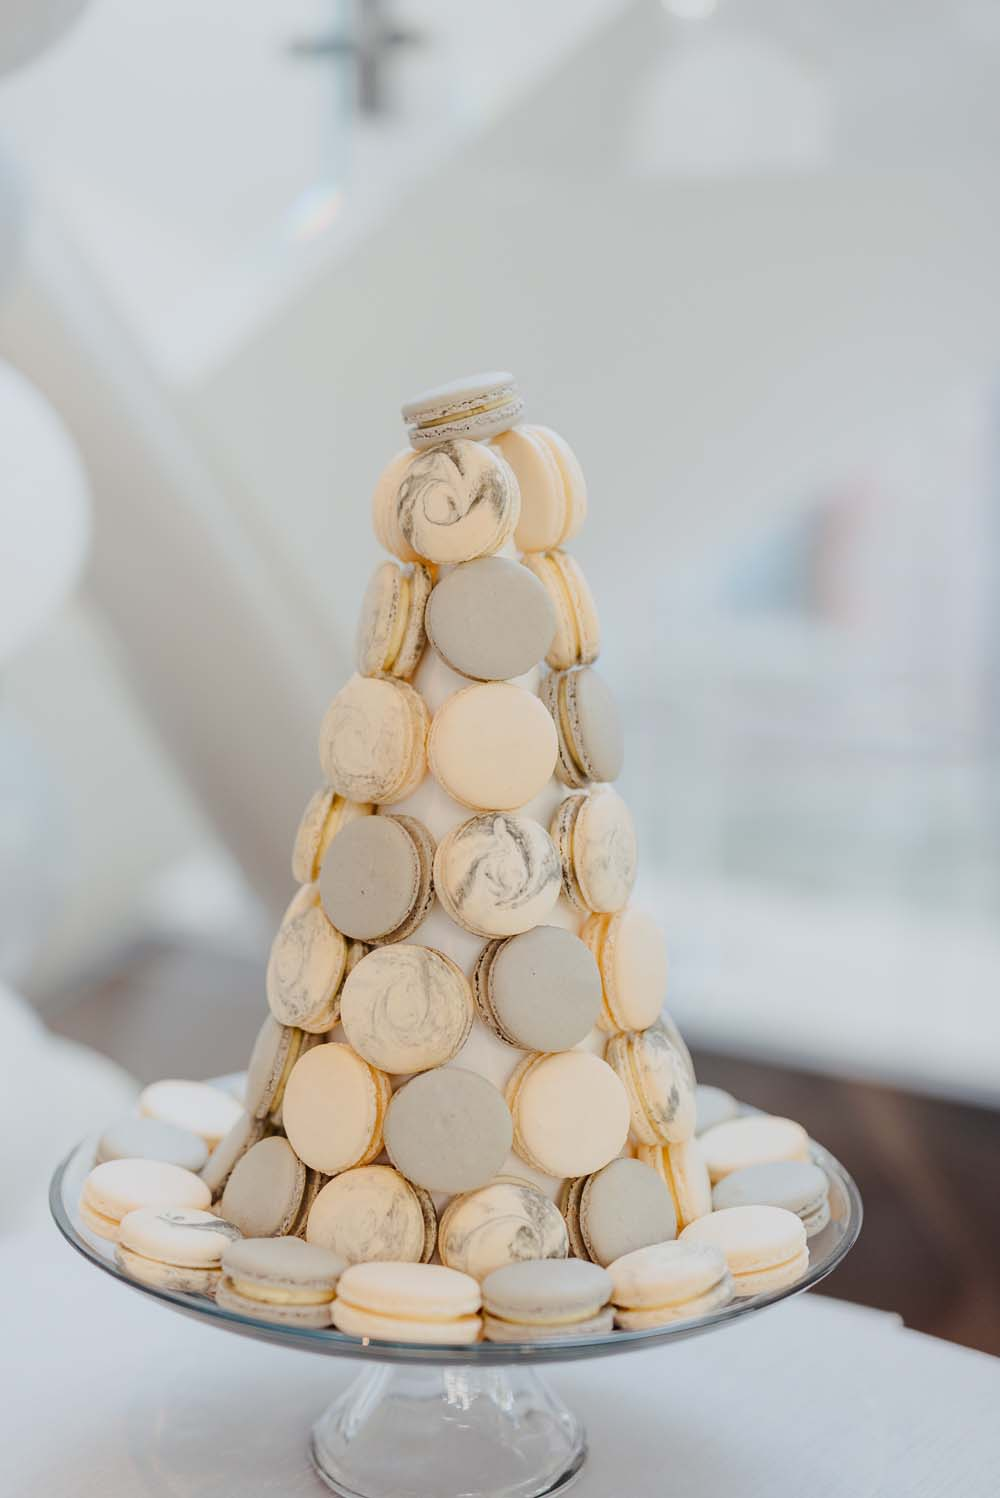 An Opulent Wedding At The Royal Conservatory Of Music - macarons